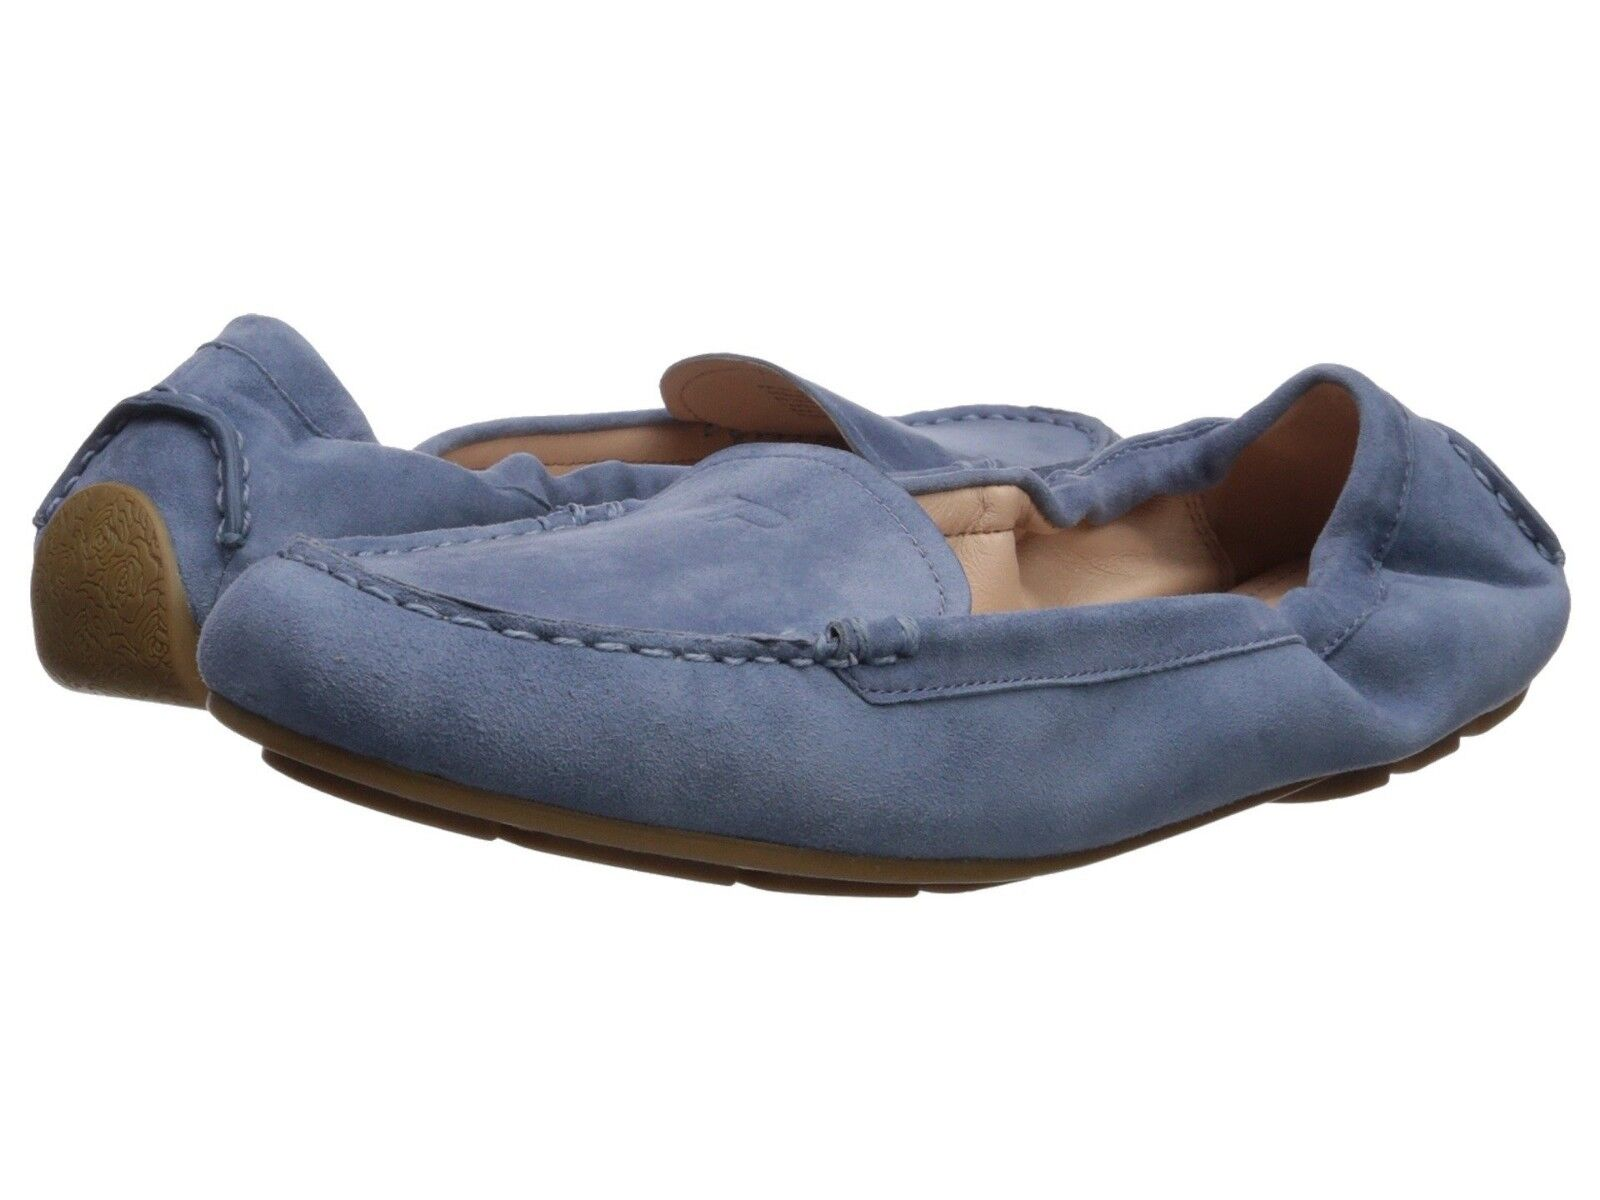 Taryn pink Women's Kristine Silky Suede Denim Denim Denim Driving Moccasin Slip-On shoes 0ea3b8